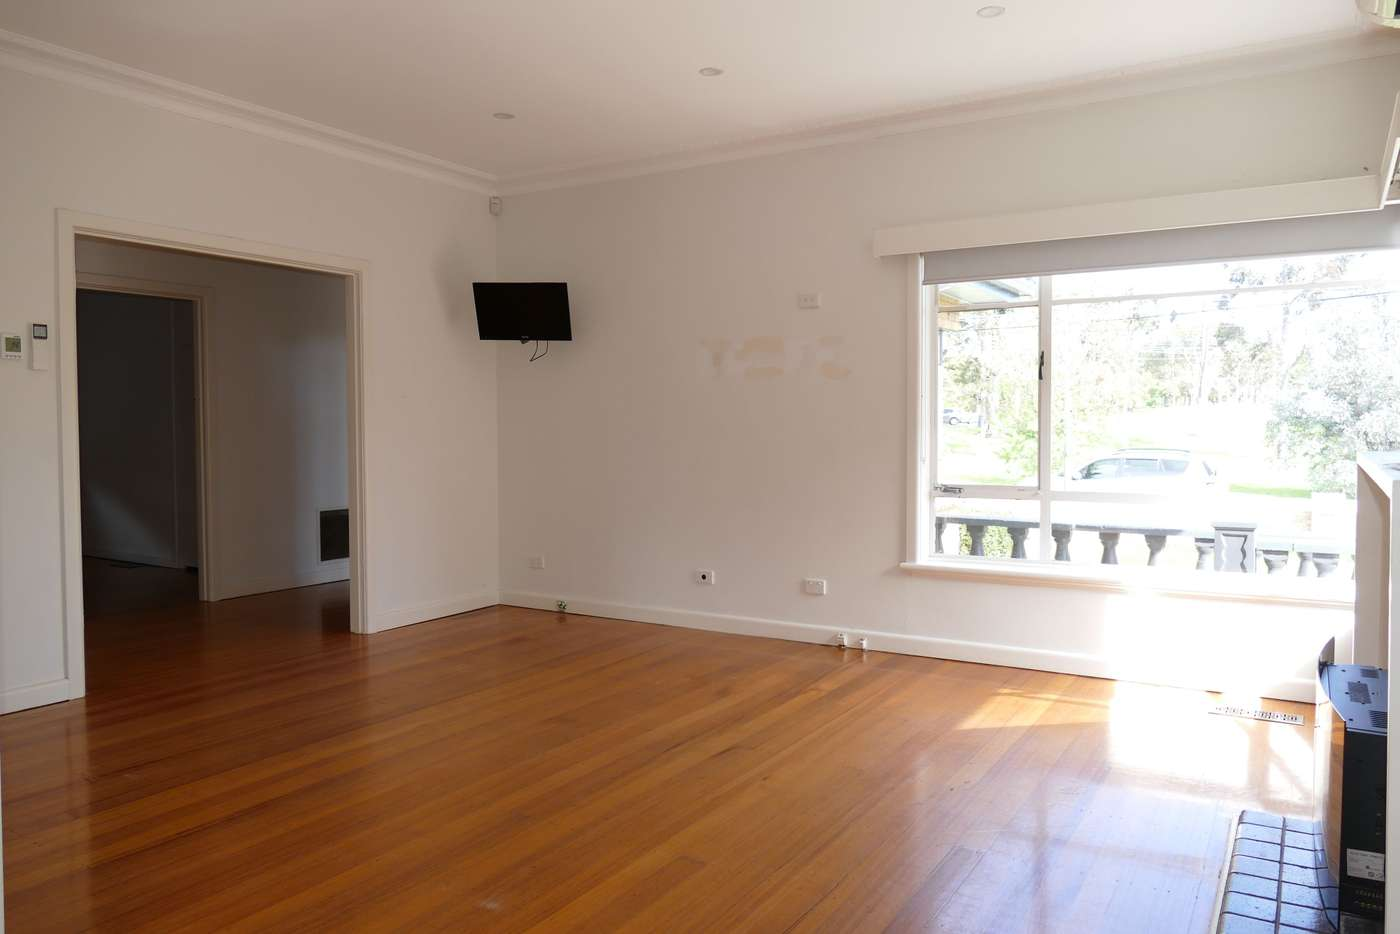 Sixth view of Homely house listing, 6 The Rialto, Malvern East VIC 3145